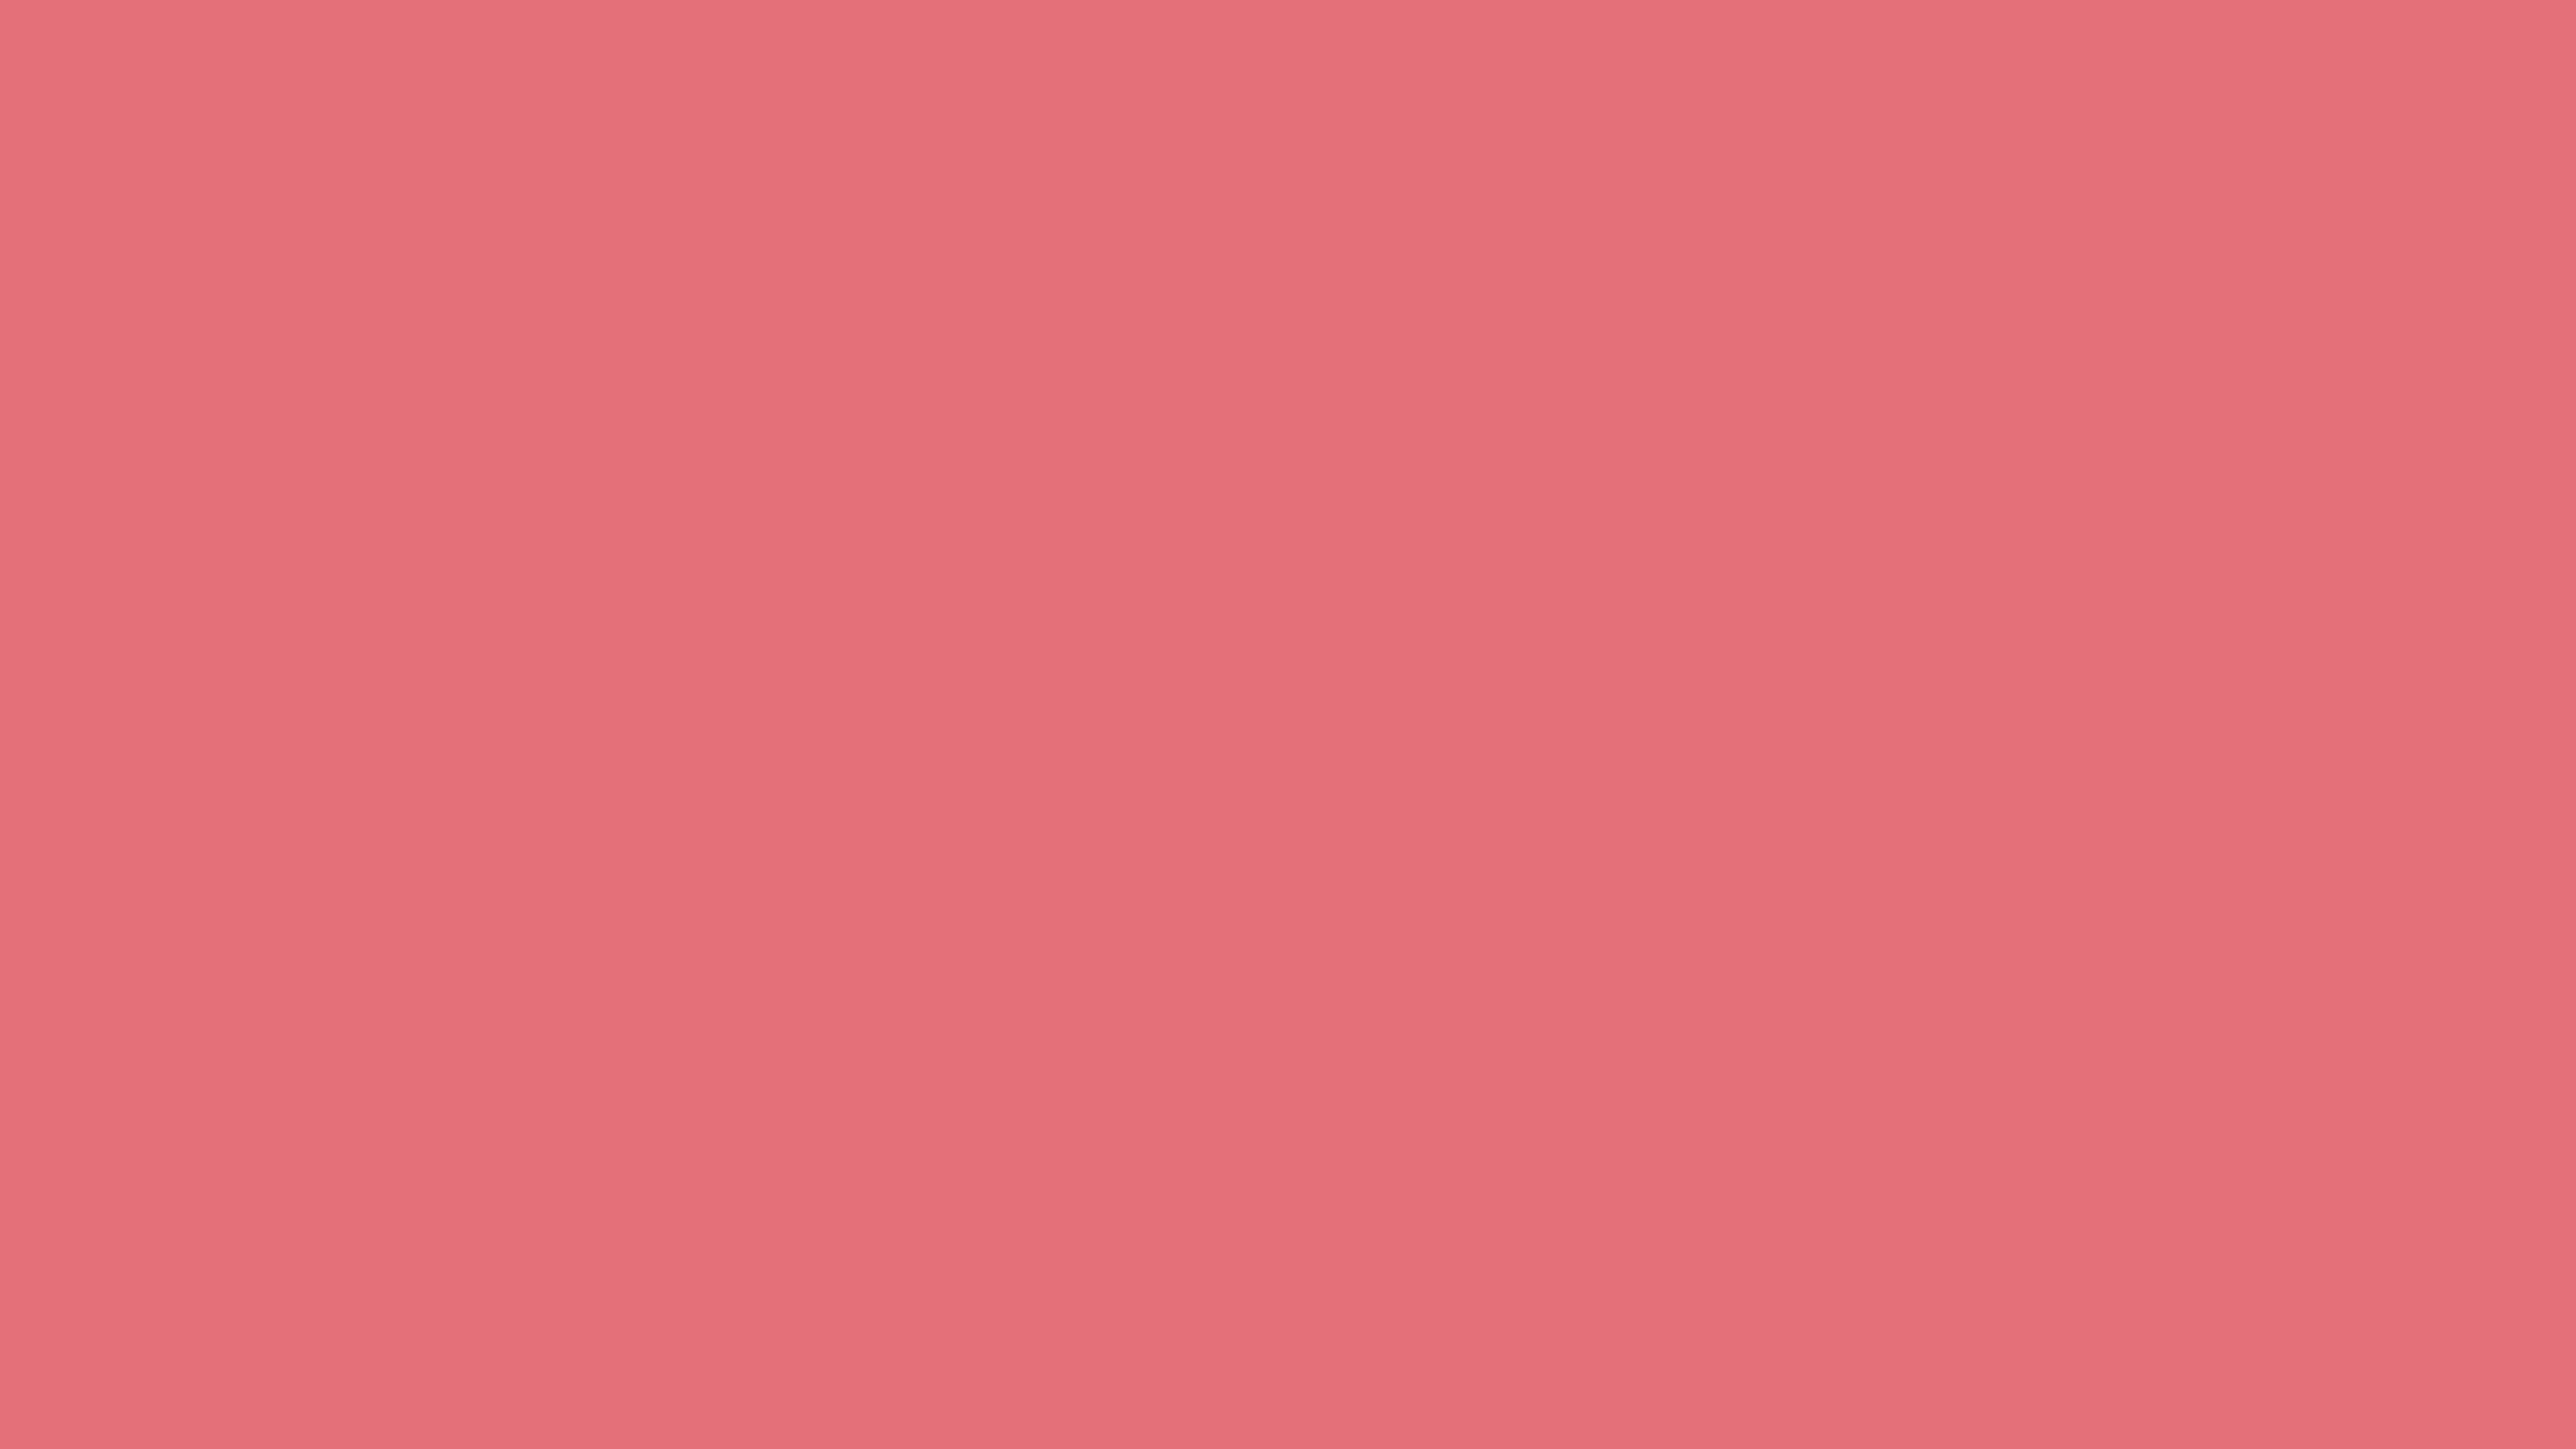 3840x2160 Tango Pink Solid Color Background